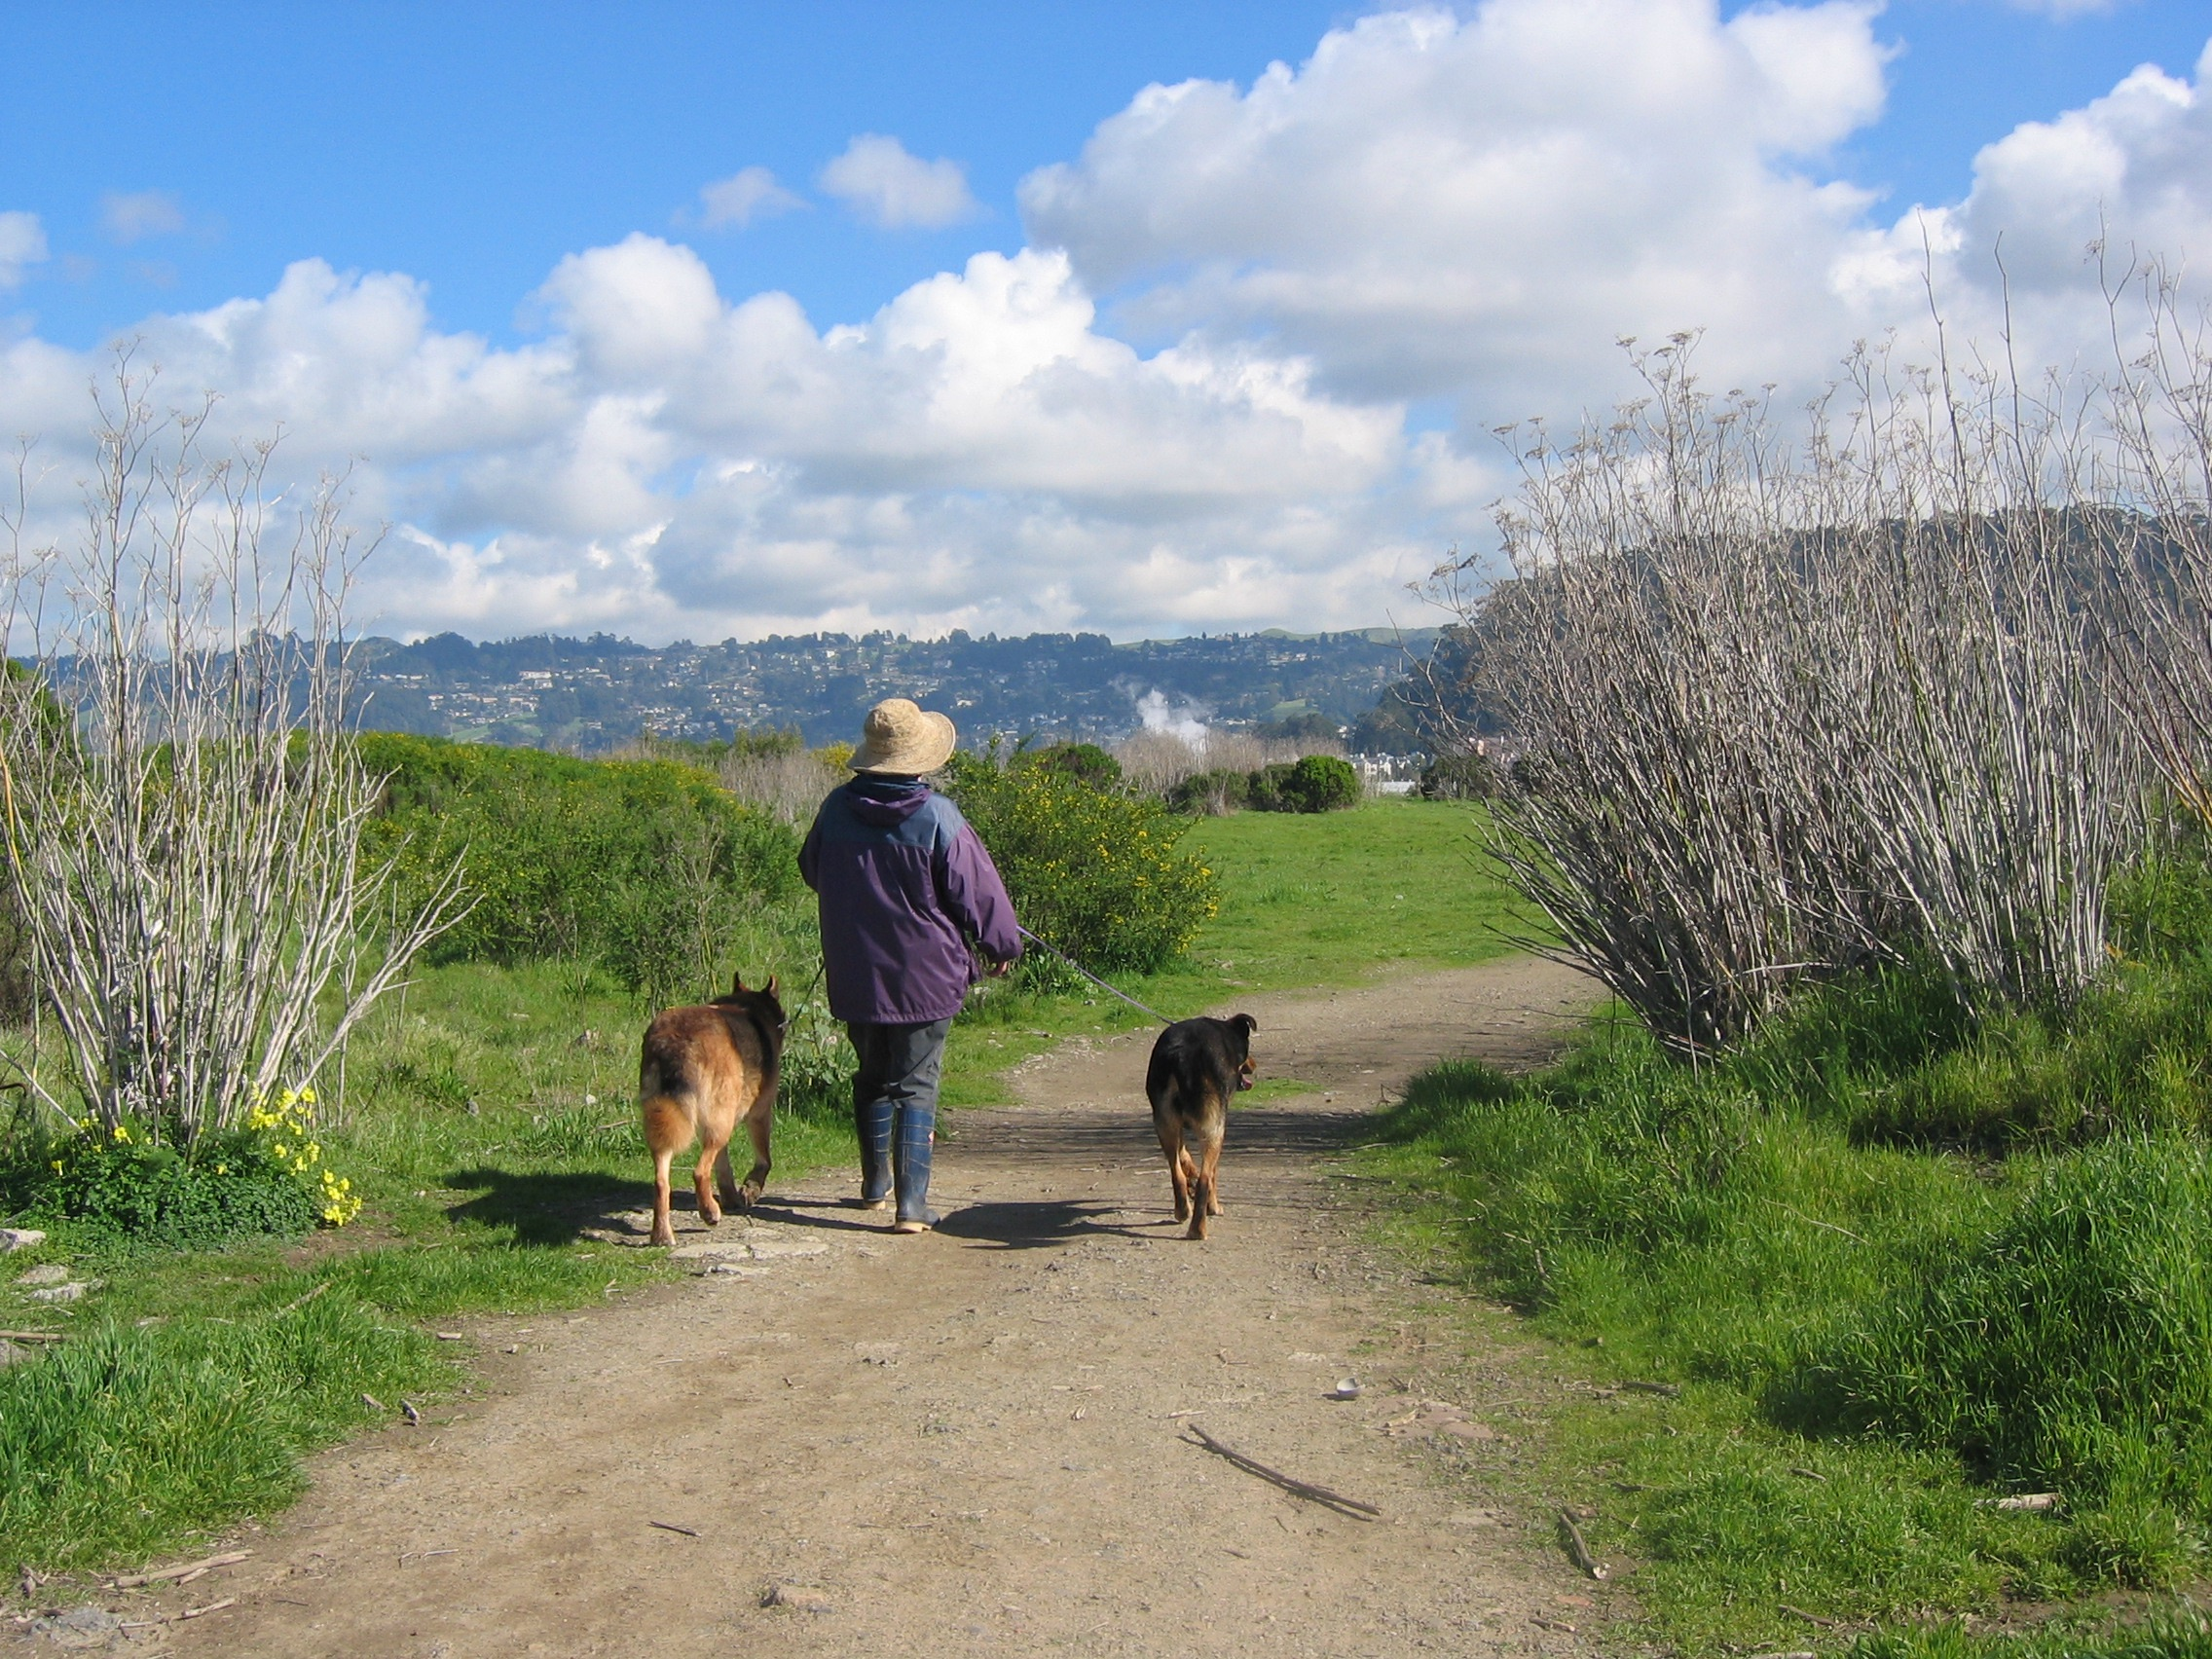 Take a hike - Walking is the most popular activity at the Bulb. The park is open from sunrise to sunset.